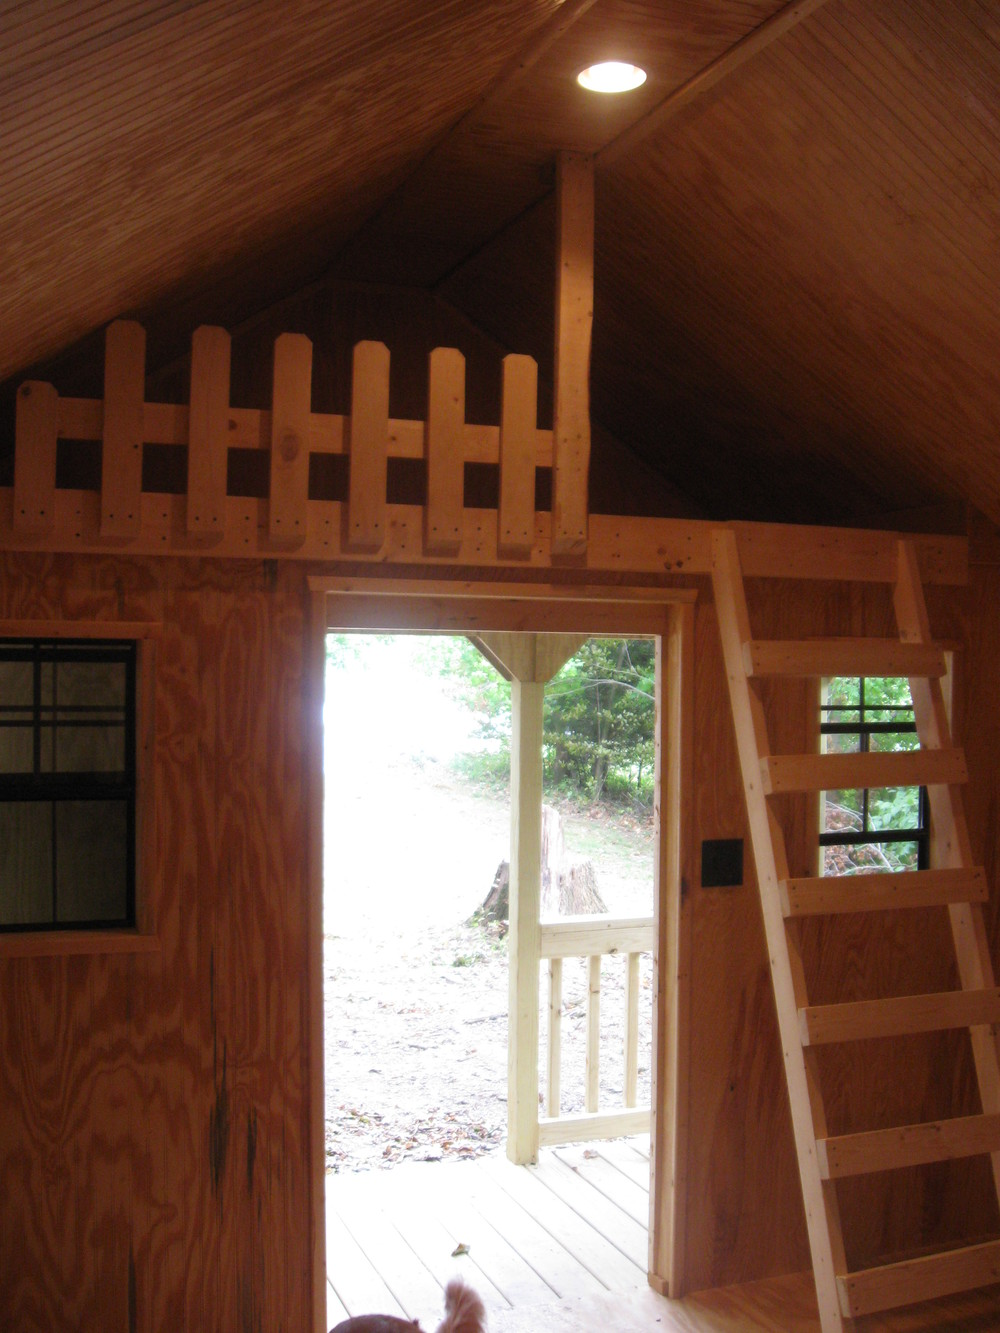 Loft bed above the porch is a great place for the kiddos!